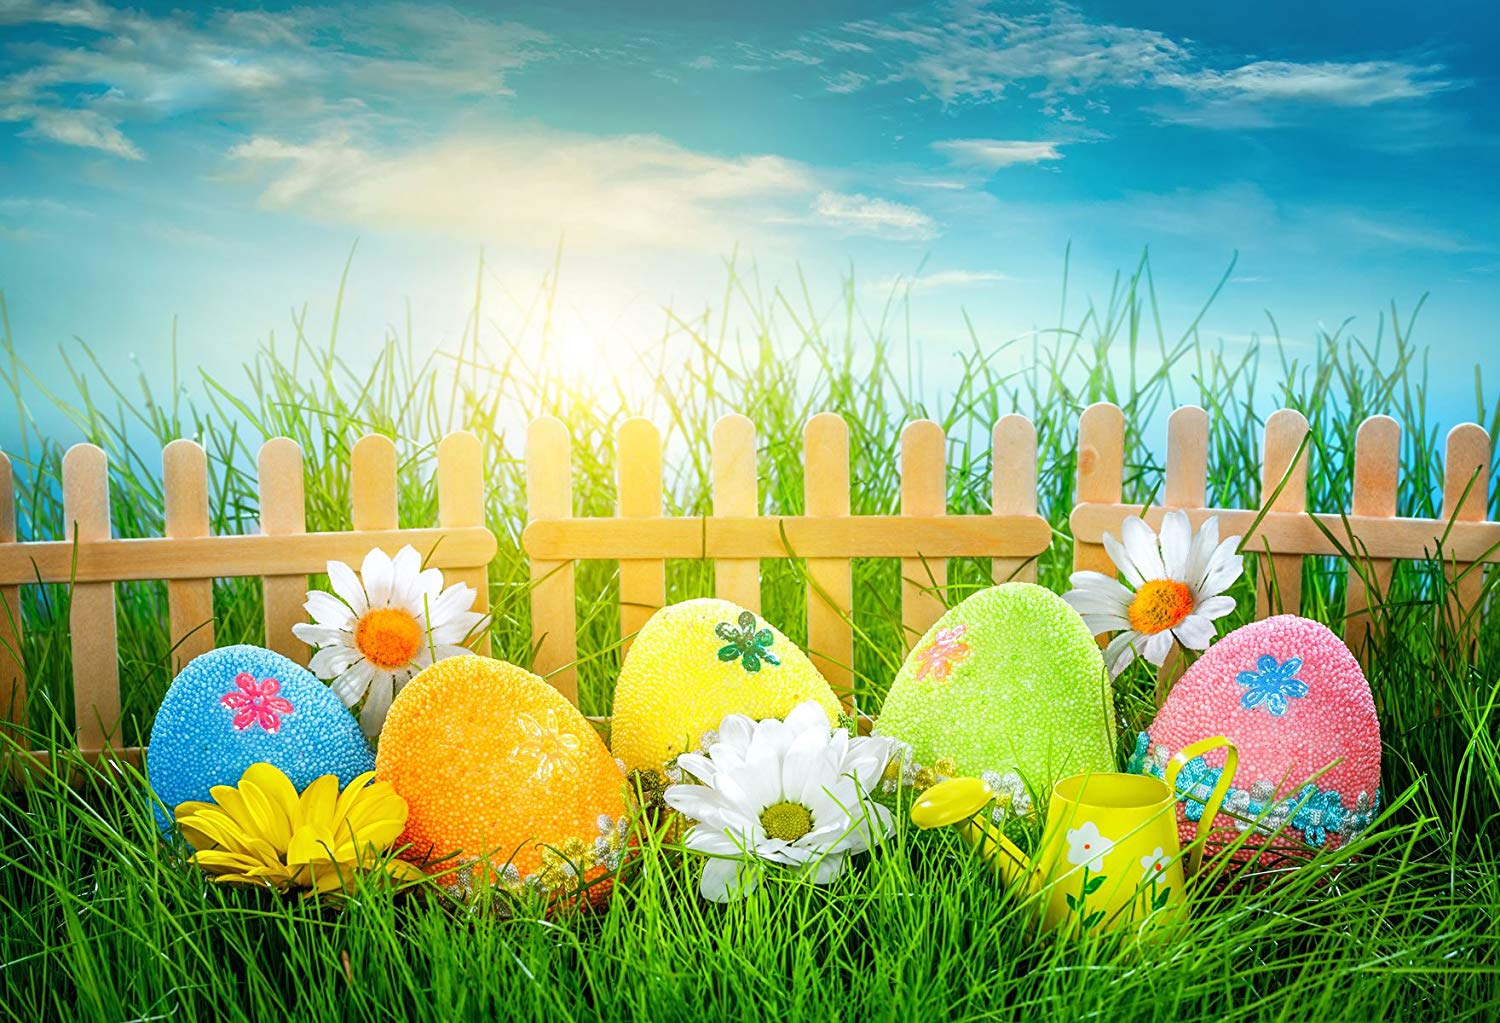 Amazoncom 7x5ft Easter Photography Backdrops Colorful Eggs 1500x1023